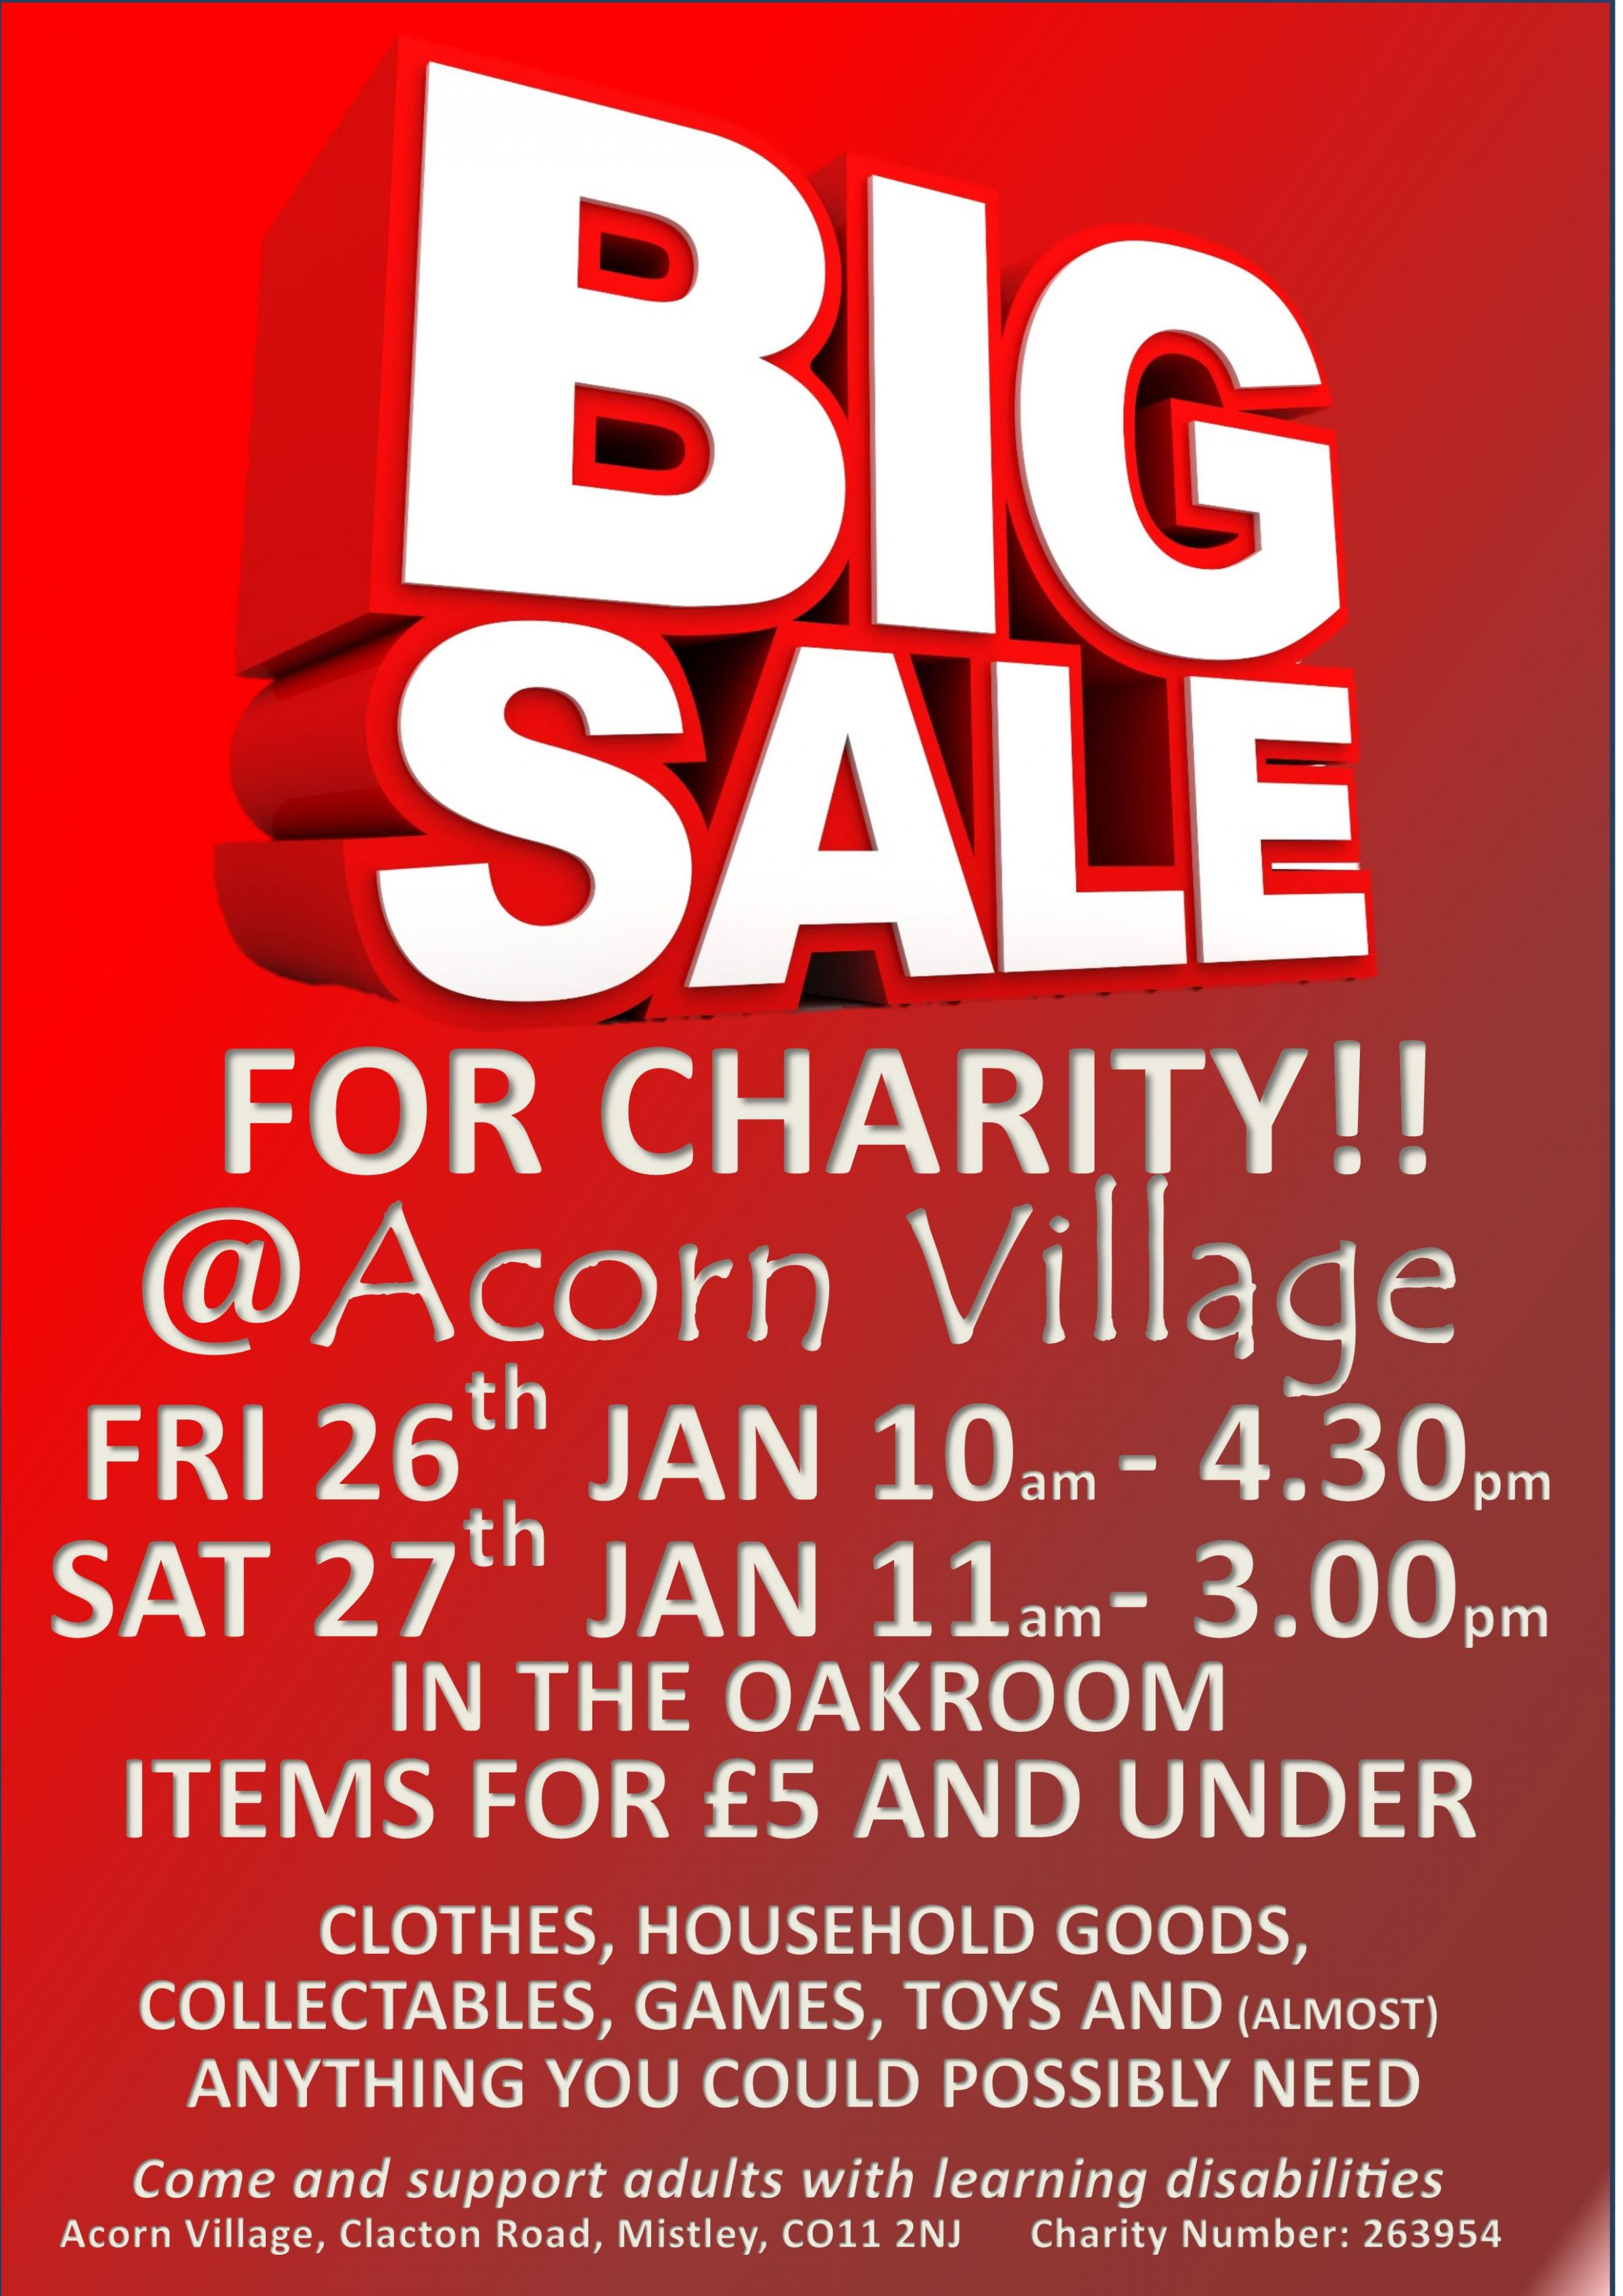 £5 & Under Big Charity Sale